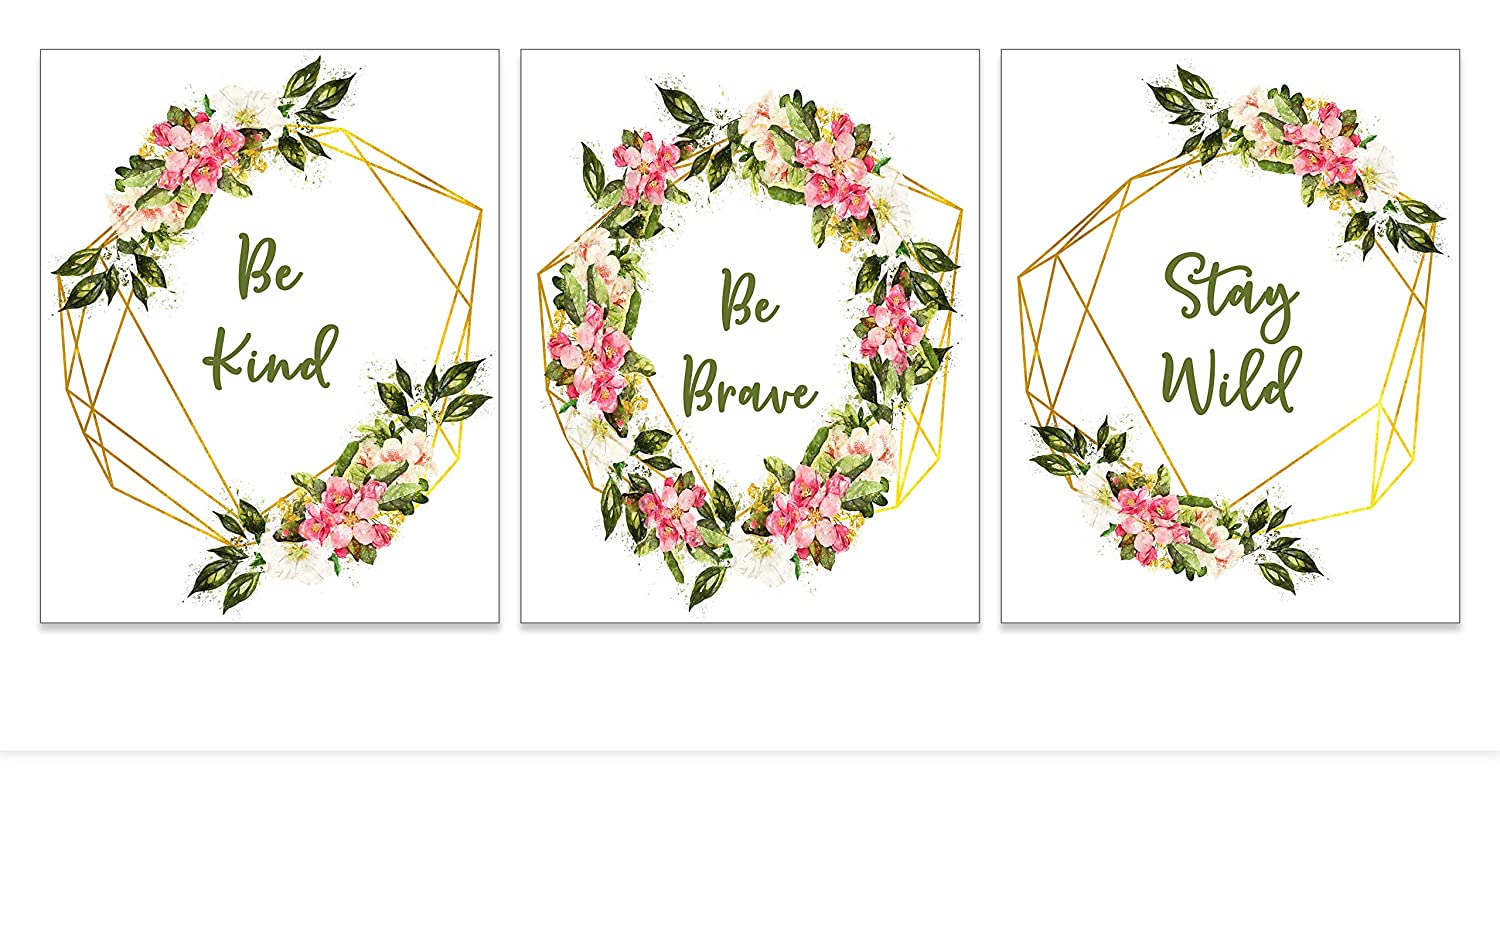 Strong Girls Floral Wreath Art Prints - Inspirational Quote Wall Posters for Teenagers - Boho Bedroom Wall Decor - Shabby Chic Inspirational Artwork for Teens Women - Set of 3 8x10 UNFRAMED